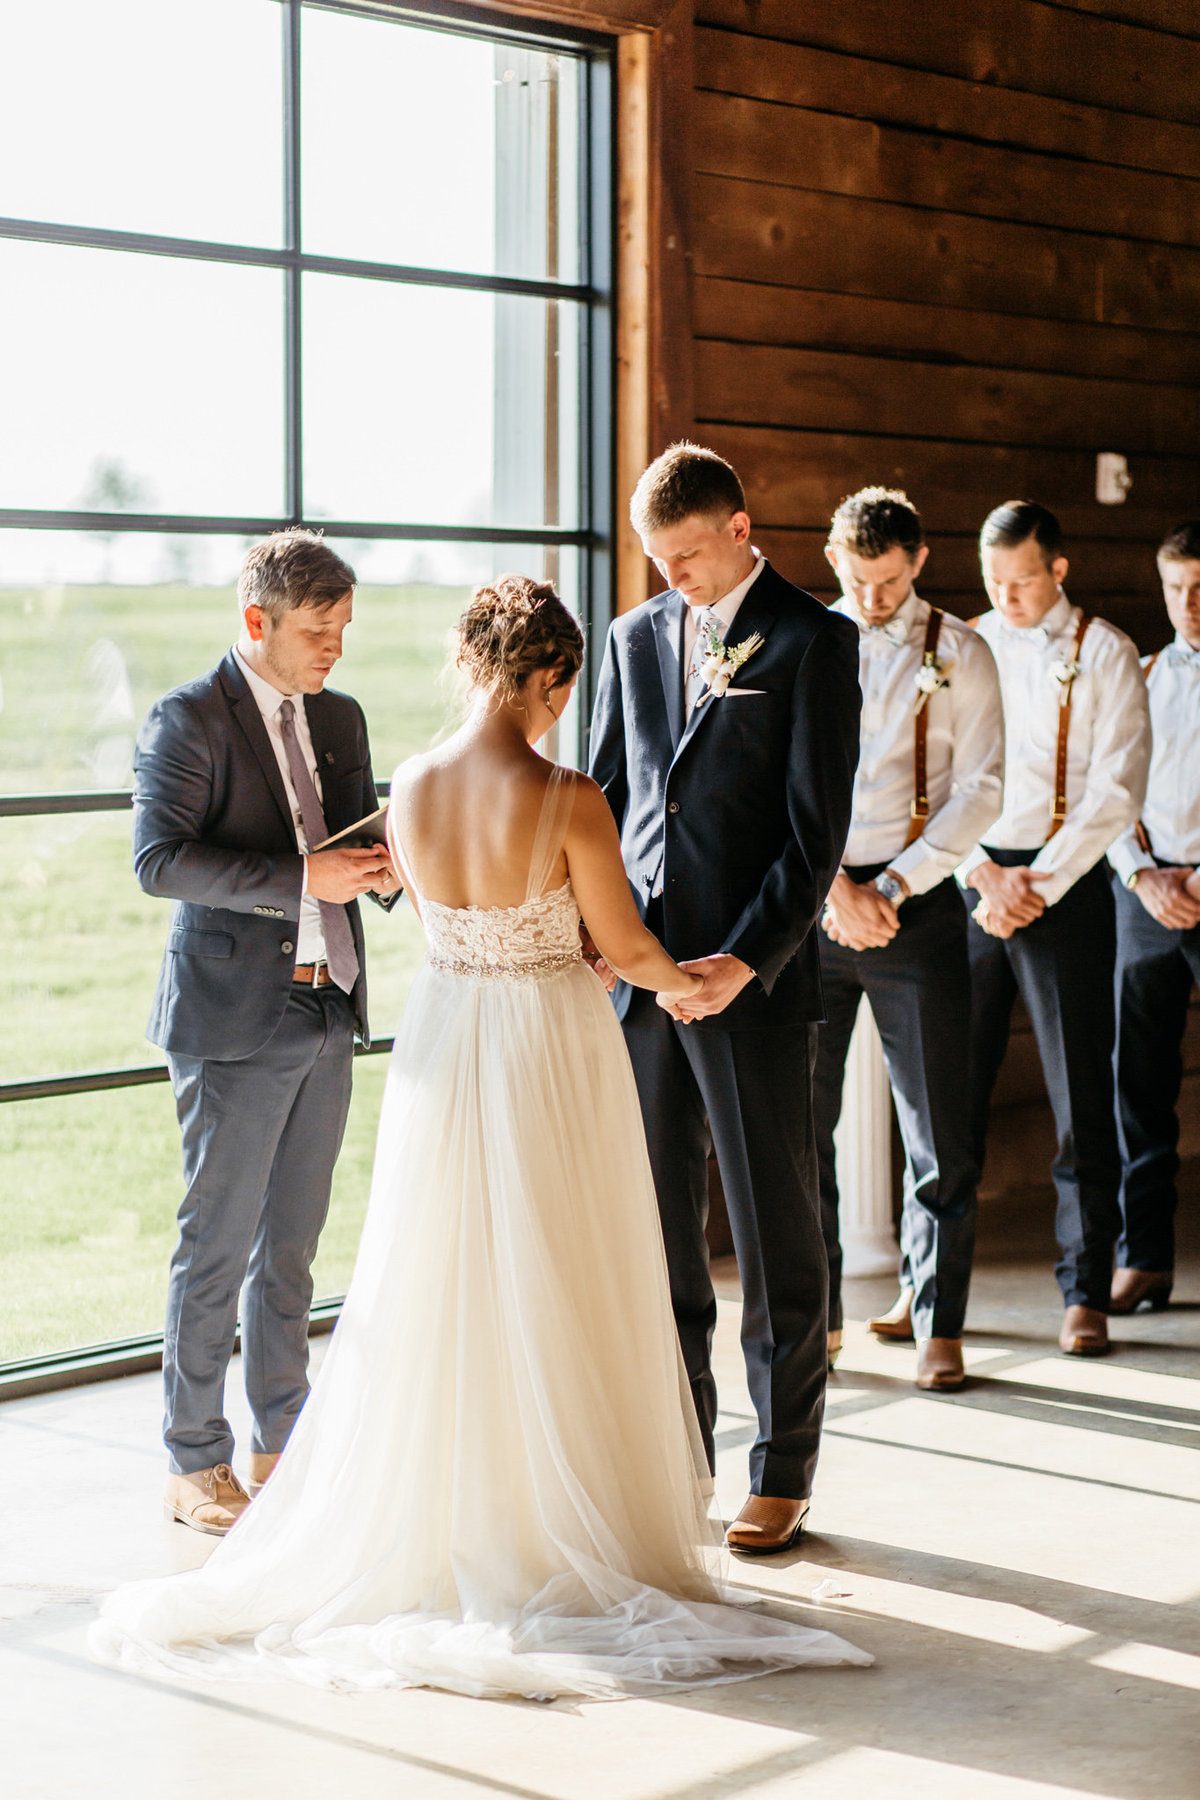 Alexa-Vossler-Photo_Dallas-Wedding-Photographer_North-Texas-Wedding-Photographer_Stephanie-Chase-Wedding-at-Morgan-Creek-Barn-Aubrey-Texas_97